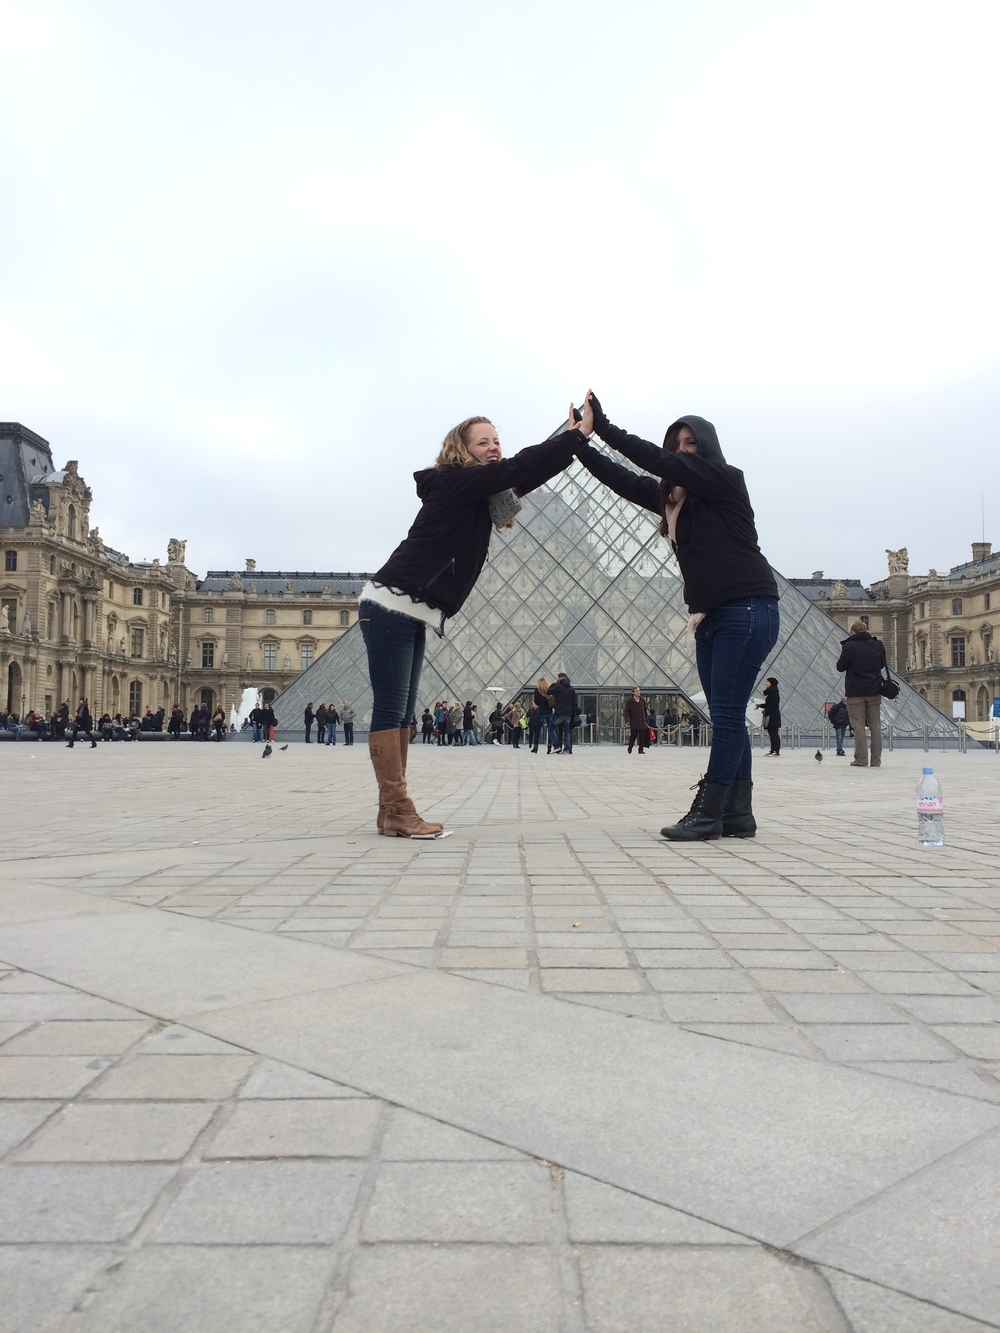 Getting Artsy at the Louvre